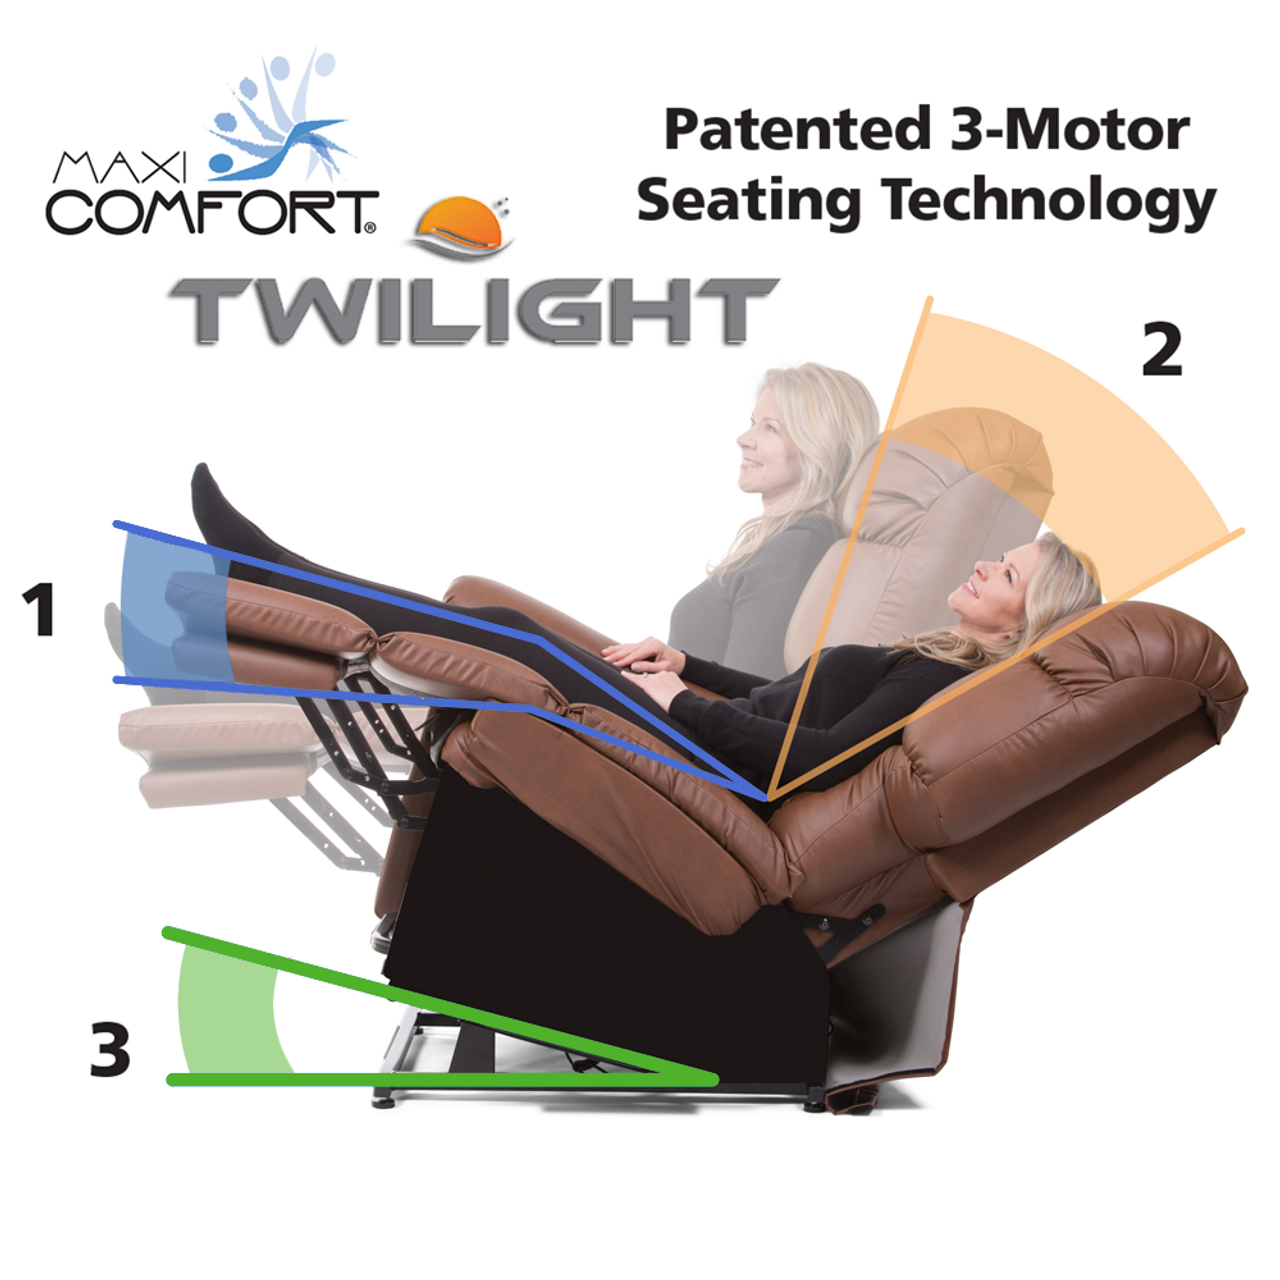 Patented 3 motor technology of the MaxiComfort Cloud with Twilight